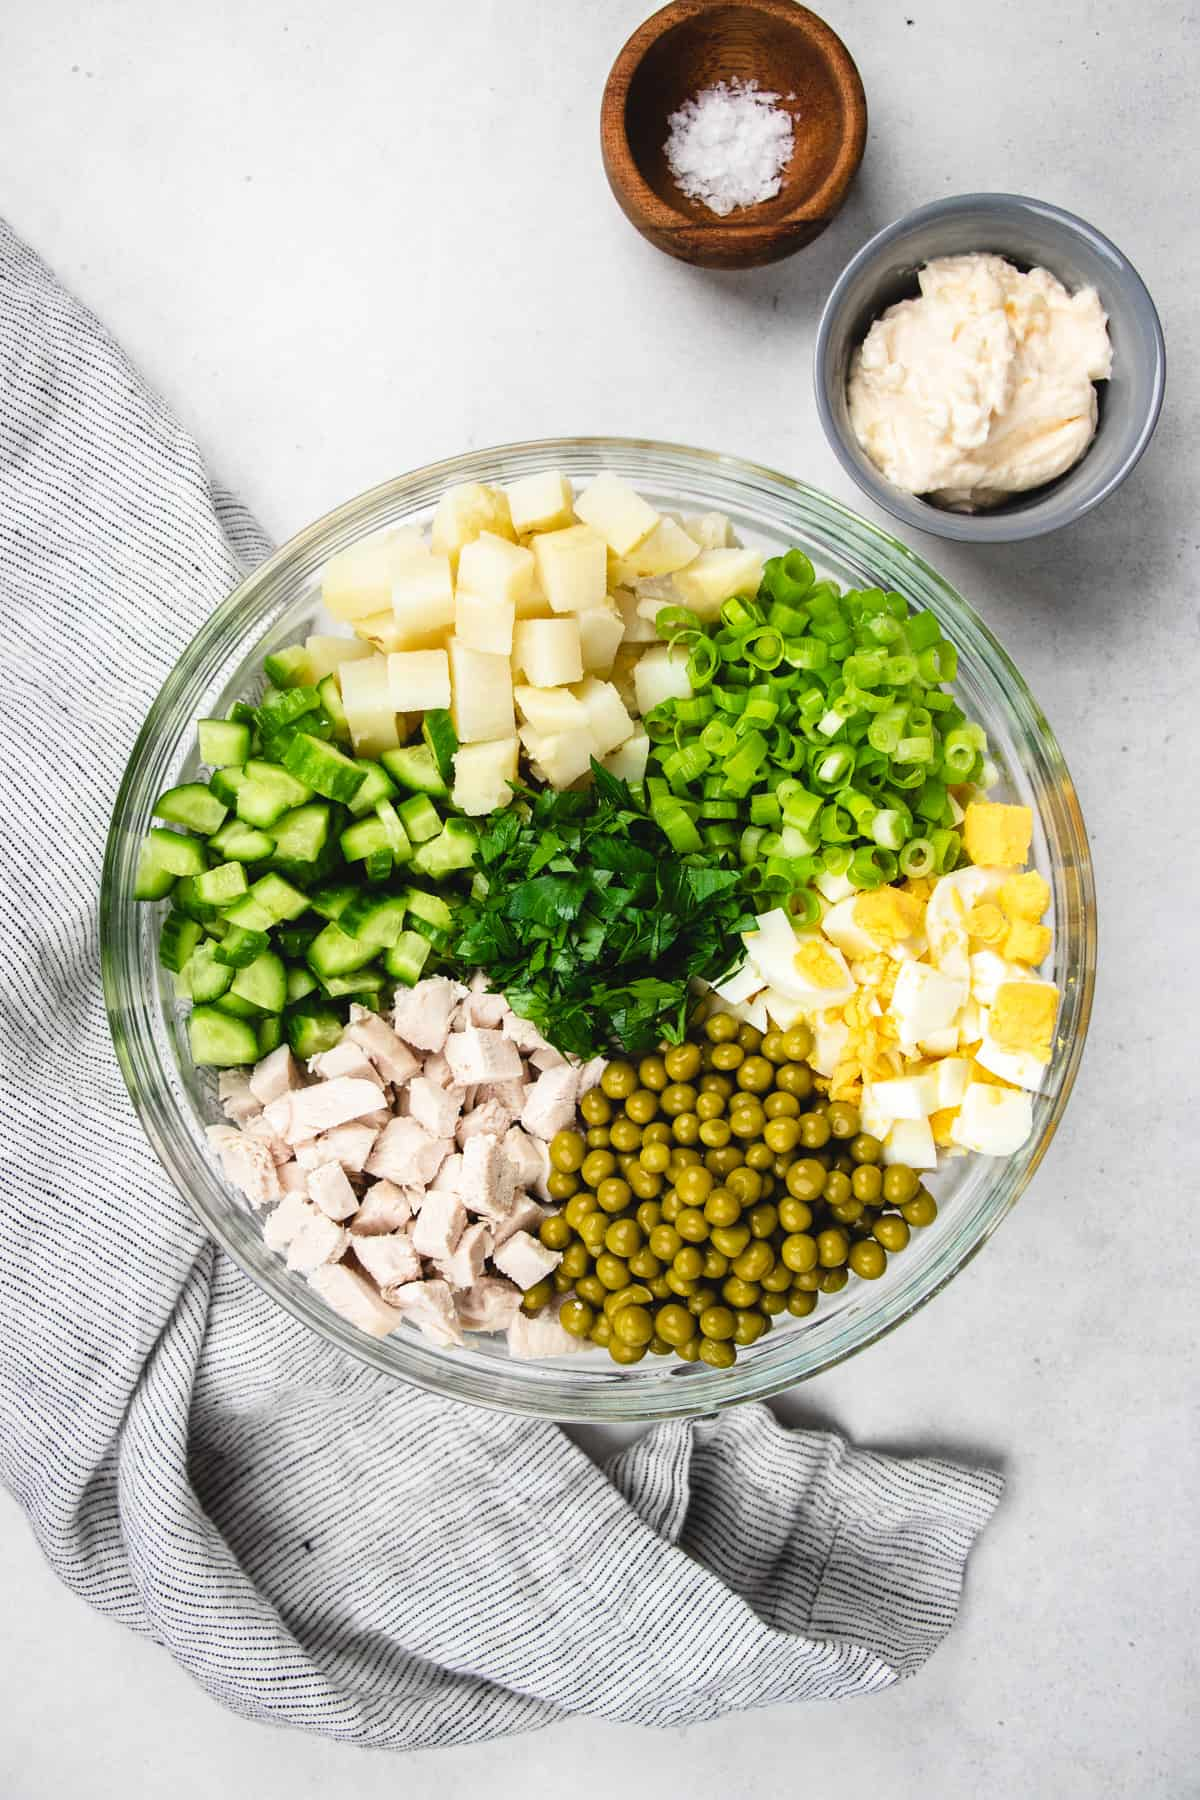 Chopped ingredients for Olivie salad in a clear bowl.